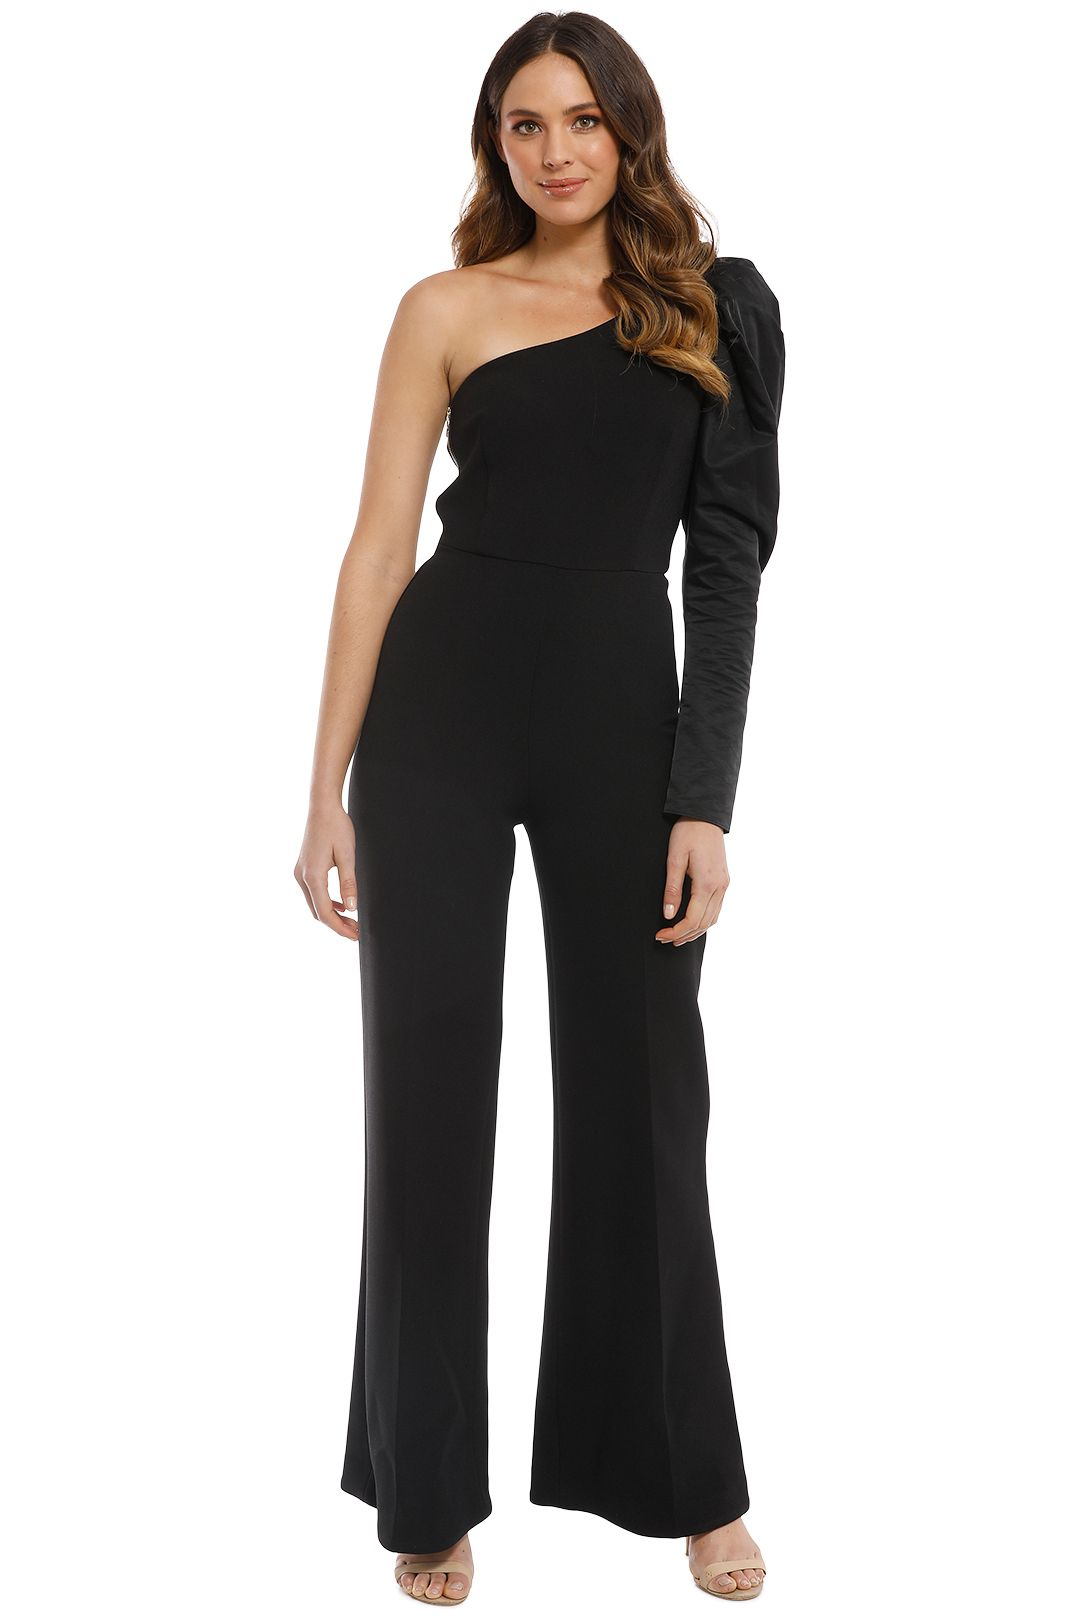 Camilla and Marc - Hawkins Jumpsuit - Black - Front